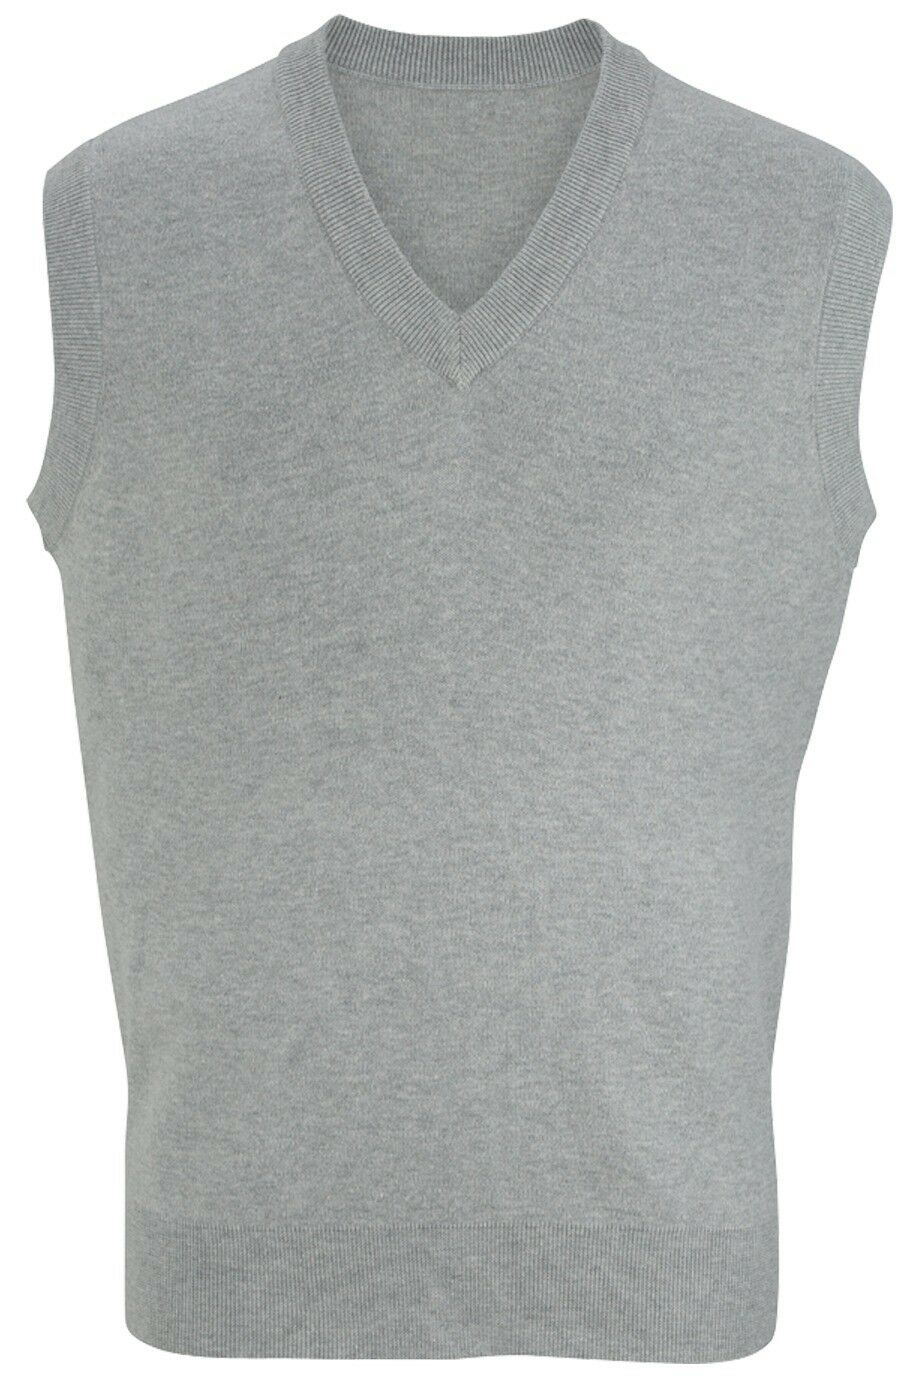 COTTON SWEATER VEST w// THE FEEL OF CASHMERE PULLOVER MEN/'S V NECK XS-5XL